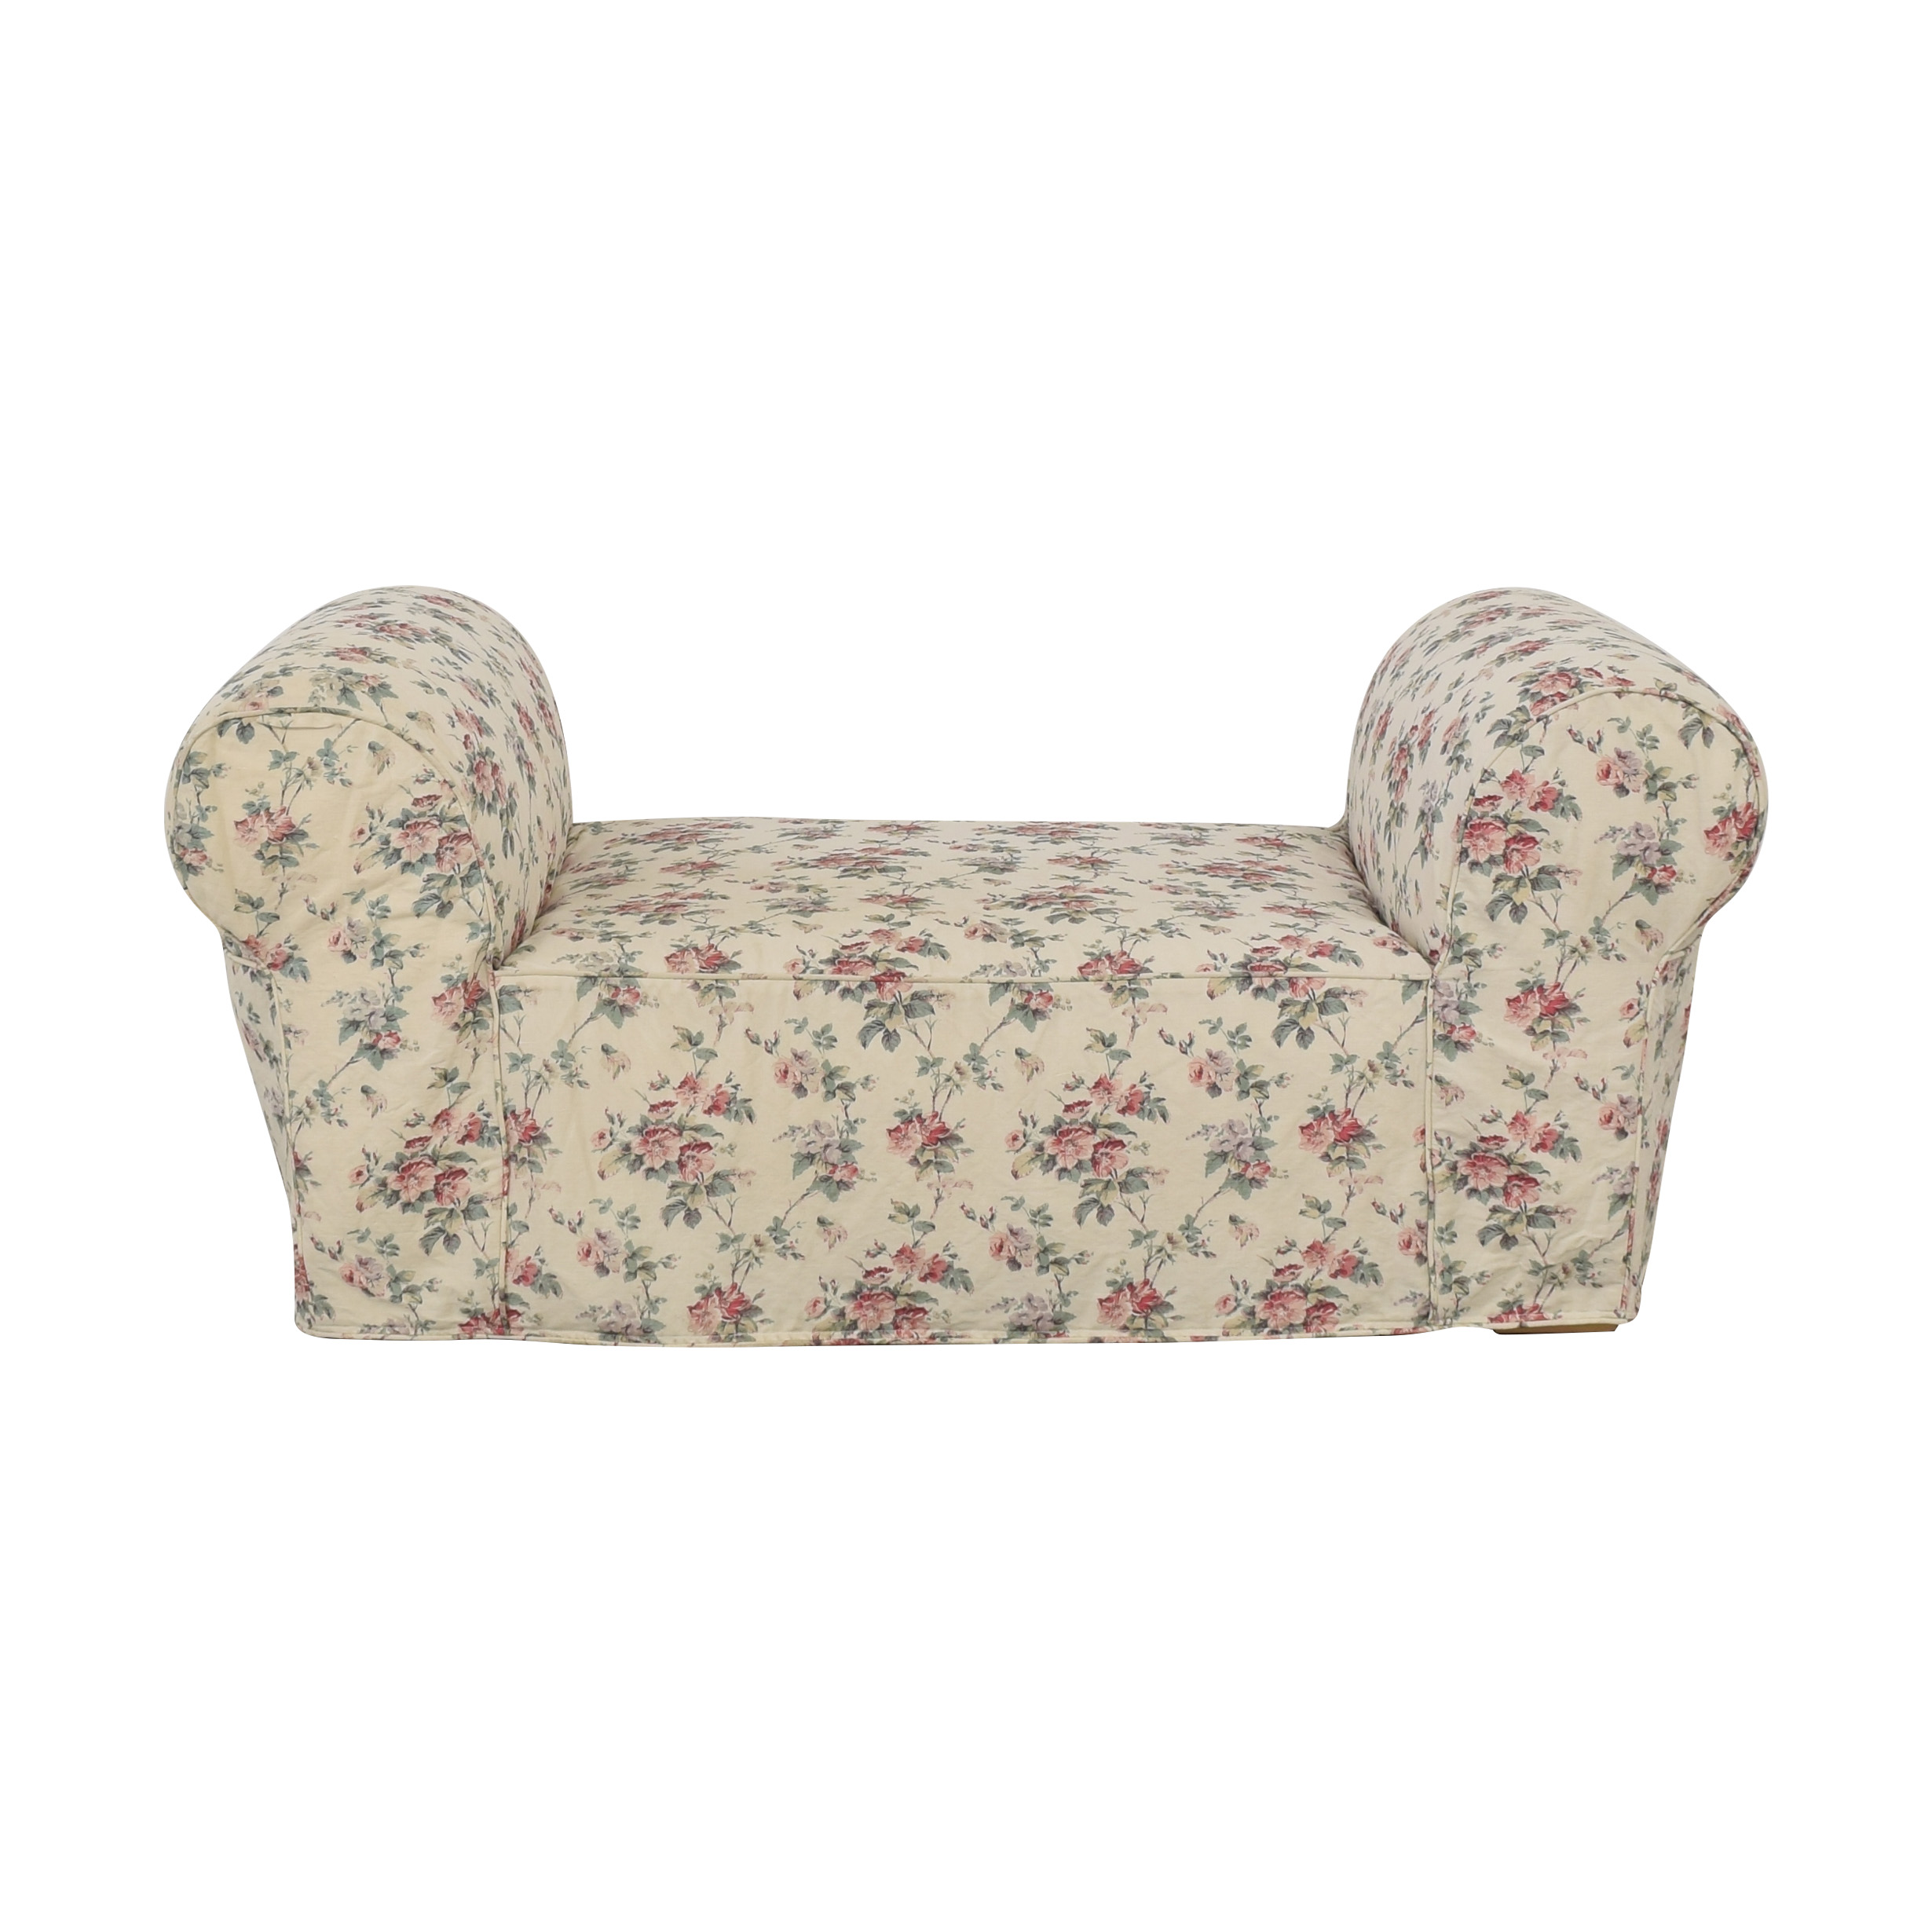 Rachel Ashwell Shabby Chic Shabby Chic Floral Loveseat nyc